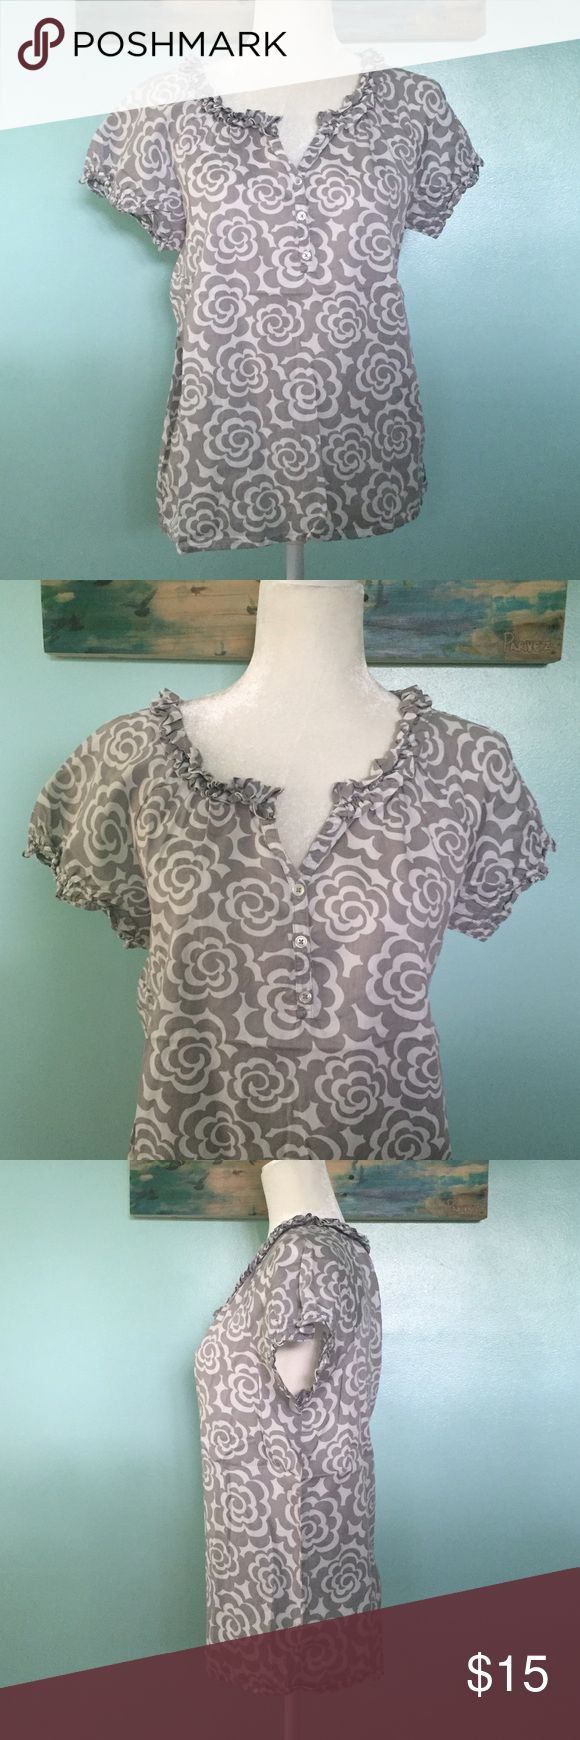 """Old Navy V-neck Short Sleeve Top - M Old Navy v-neck short sleeve too with small ruffling detail.  It was only worn once.  It can be paired with jeans or shorts.  Very comfortable to wear.  No stains, tears or snags. Posted 6/19/17.  Approximate measurements laying flat: sleeve length 9"""", armpit to armpit 20 1/2"""", length from shoulder to seam 25"""", and elastic seam width 20 1/2"""".  ✅Reasonable offers accepted ✅Bundle for discount 🚫No low-ball offers 🚫No trades Old Navy Tops"""